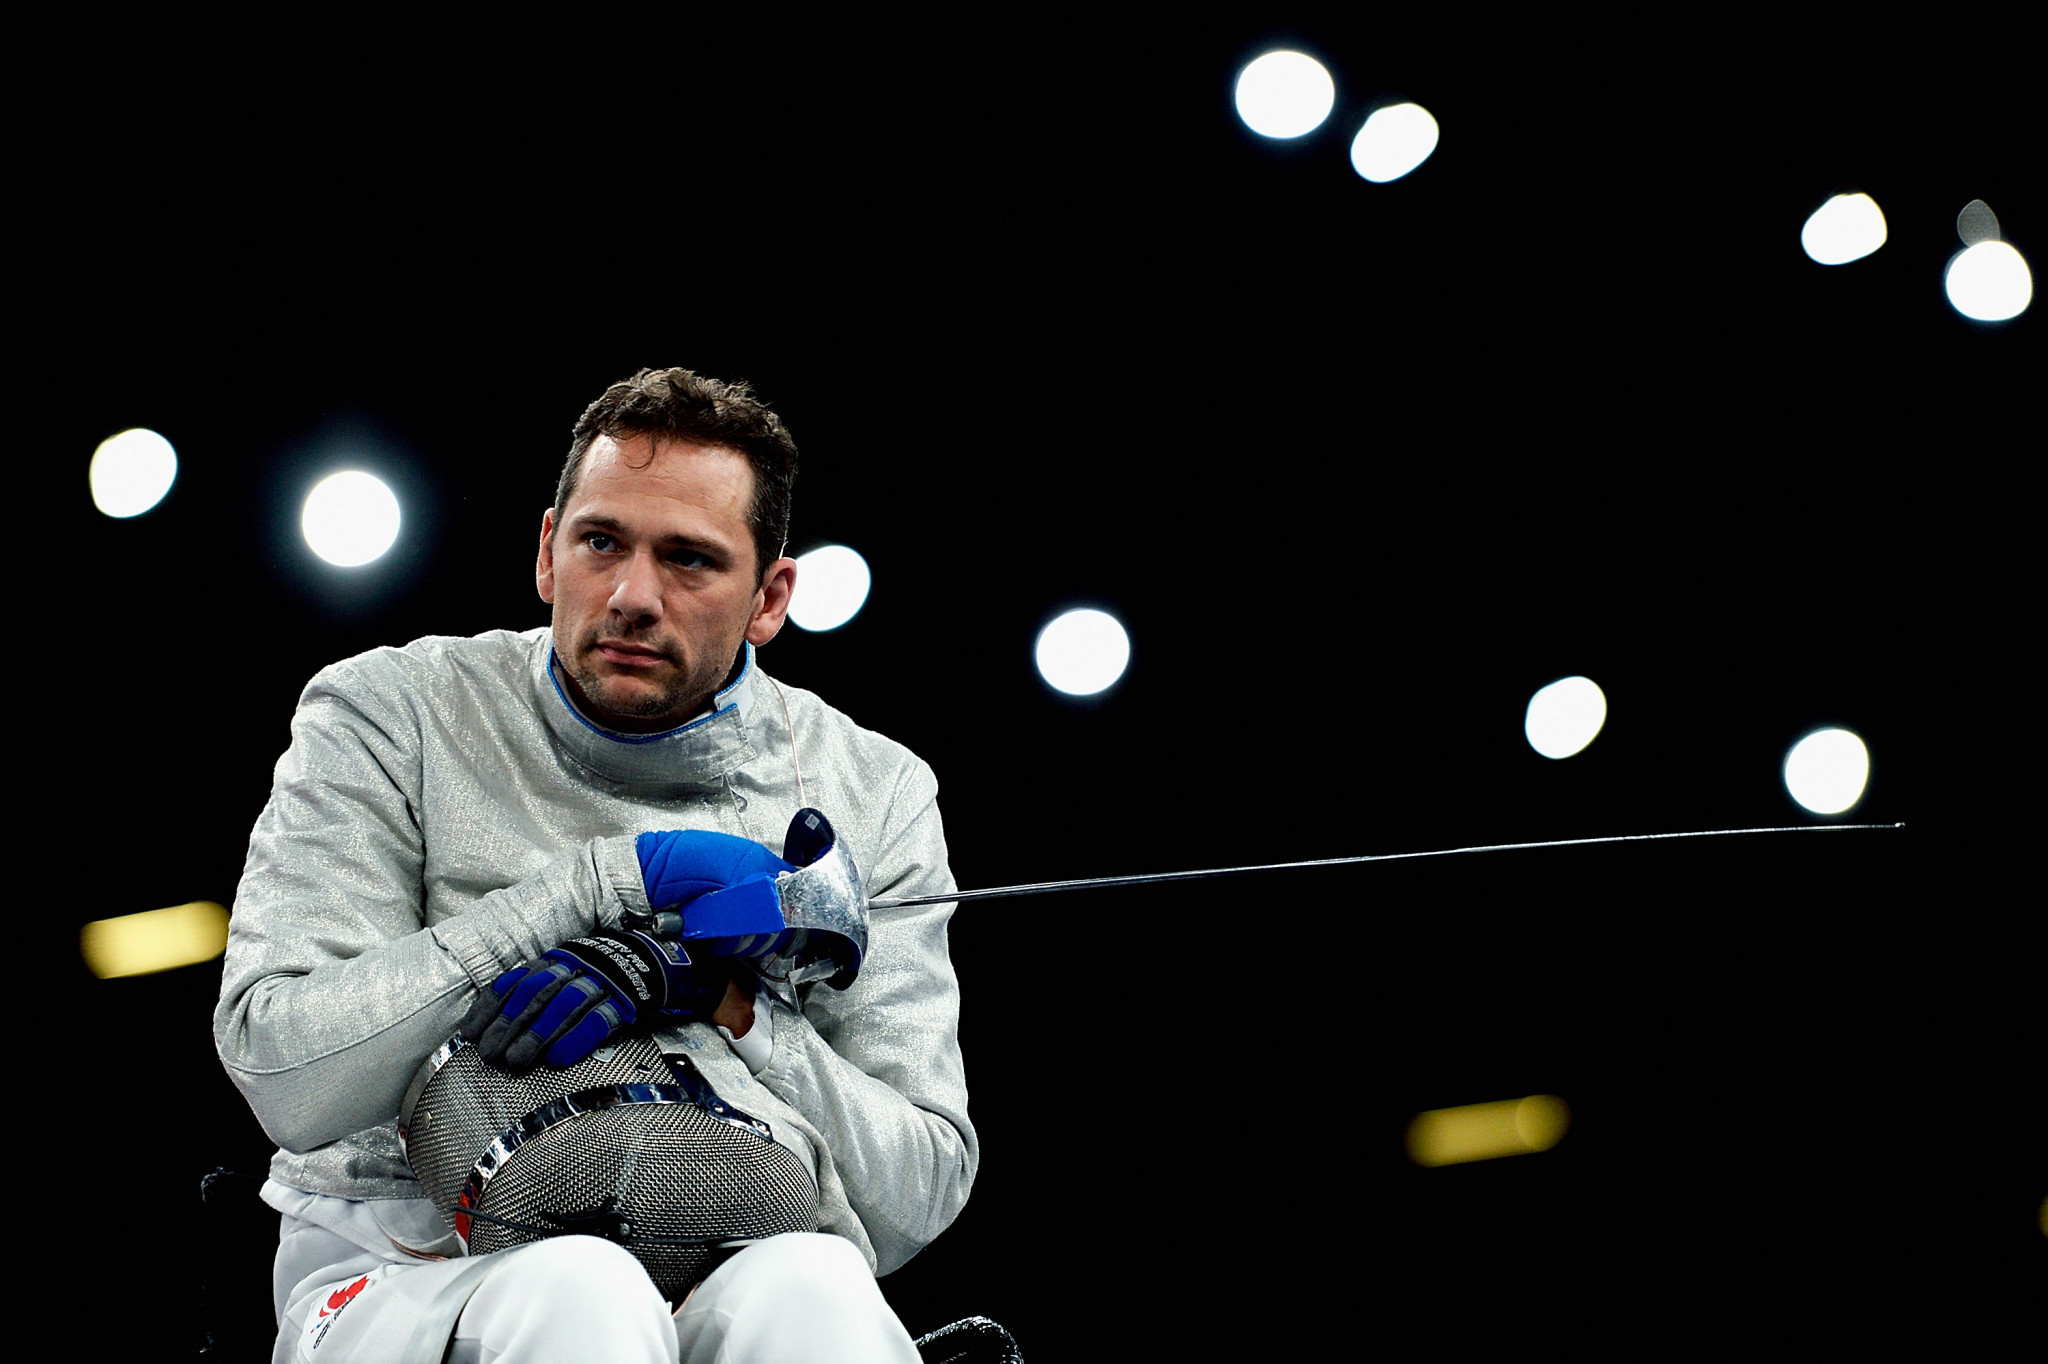 Hosts dominate men's sabre events on final day of IWAS Wheelchair Fencing World Cup in Montreal